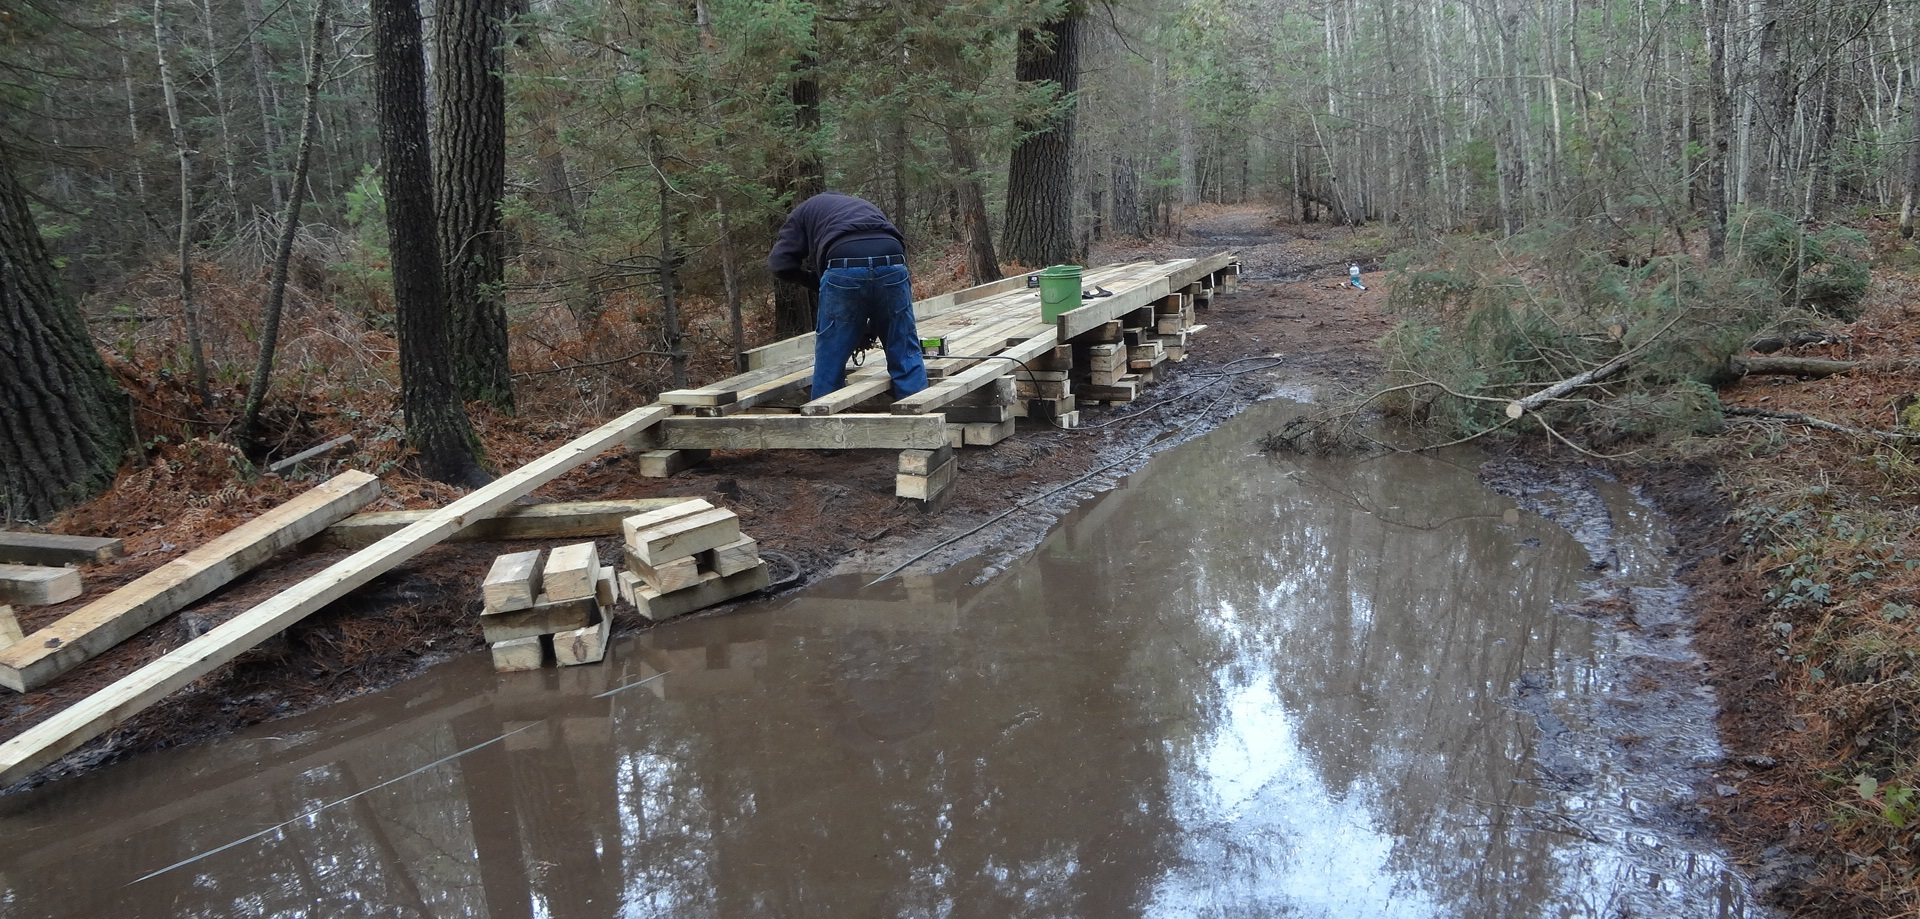 Work is taking place in this photo to construct a deck over a watery area in the Lower Peninsula.